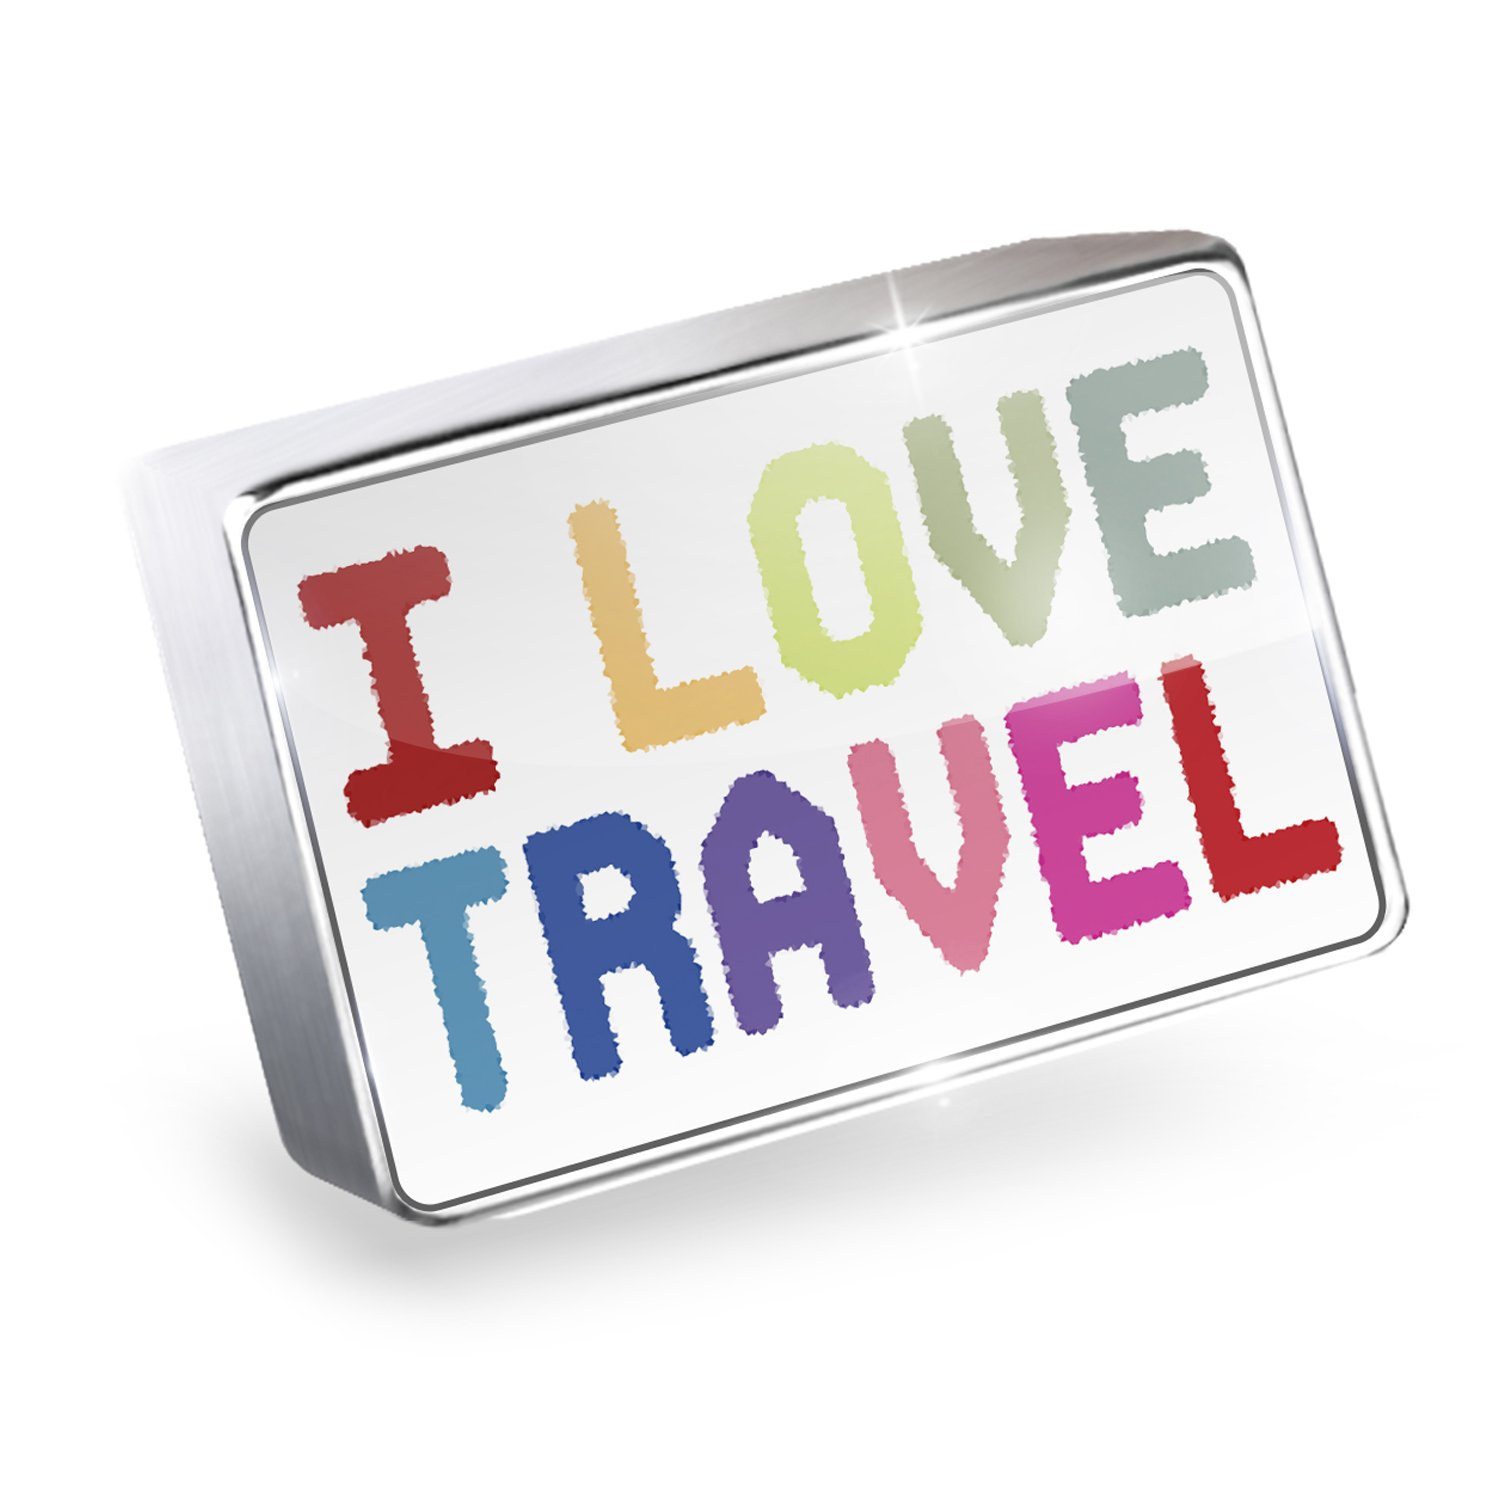 Floating Charm I Love Travel,Colorful Fits Glass Lockets, Neonblond